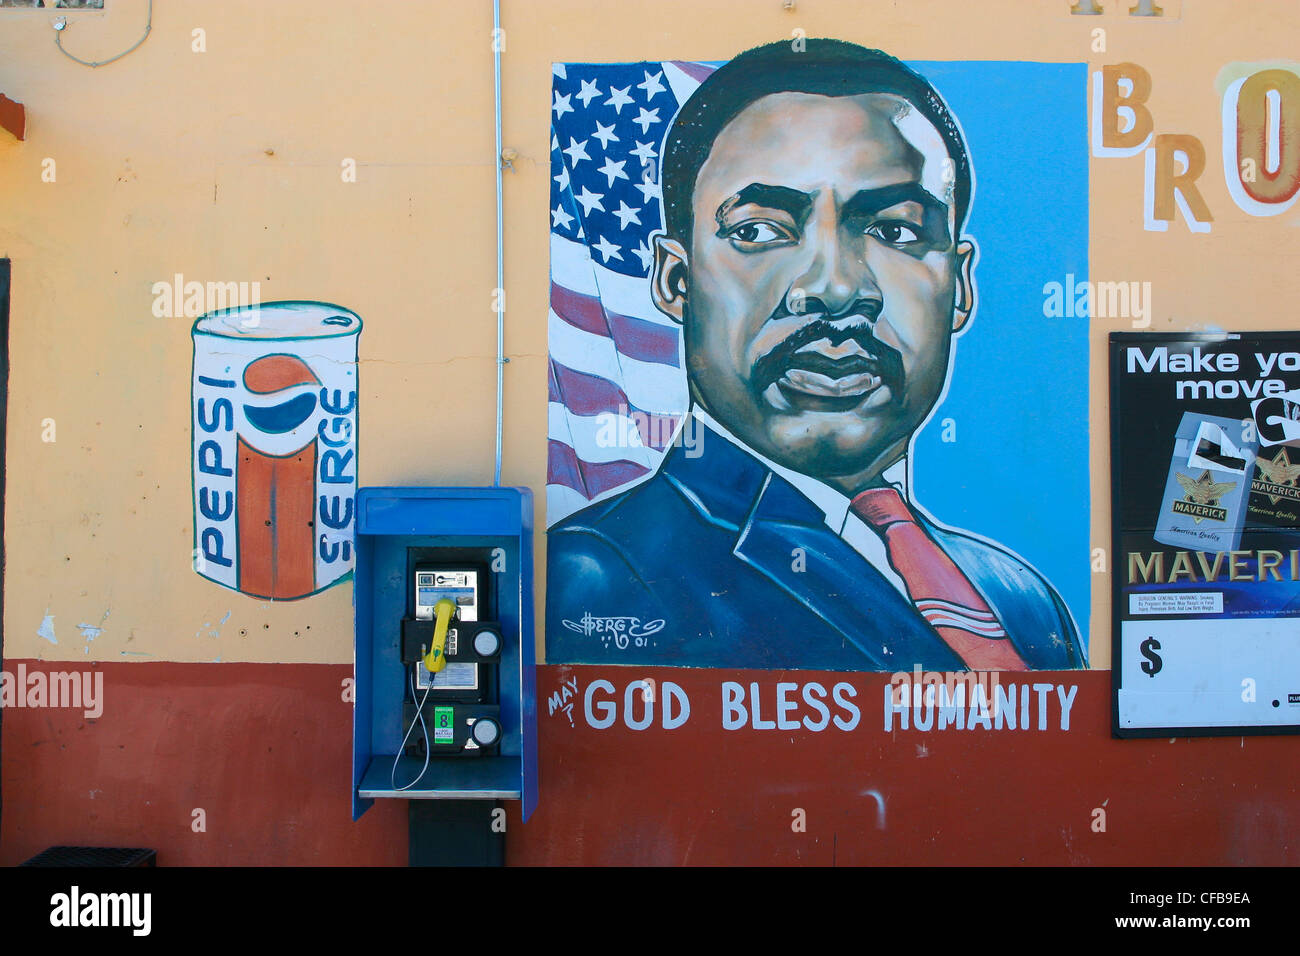 Poster of of painting Martin Luther King with US flag behind him and slogan May God Bless Humanity - Stock Image